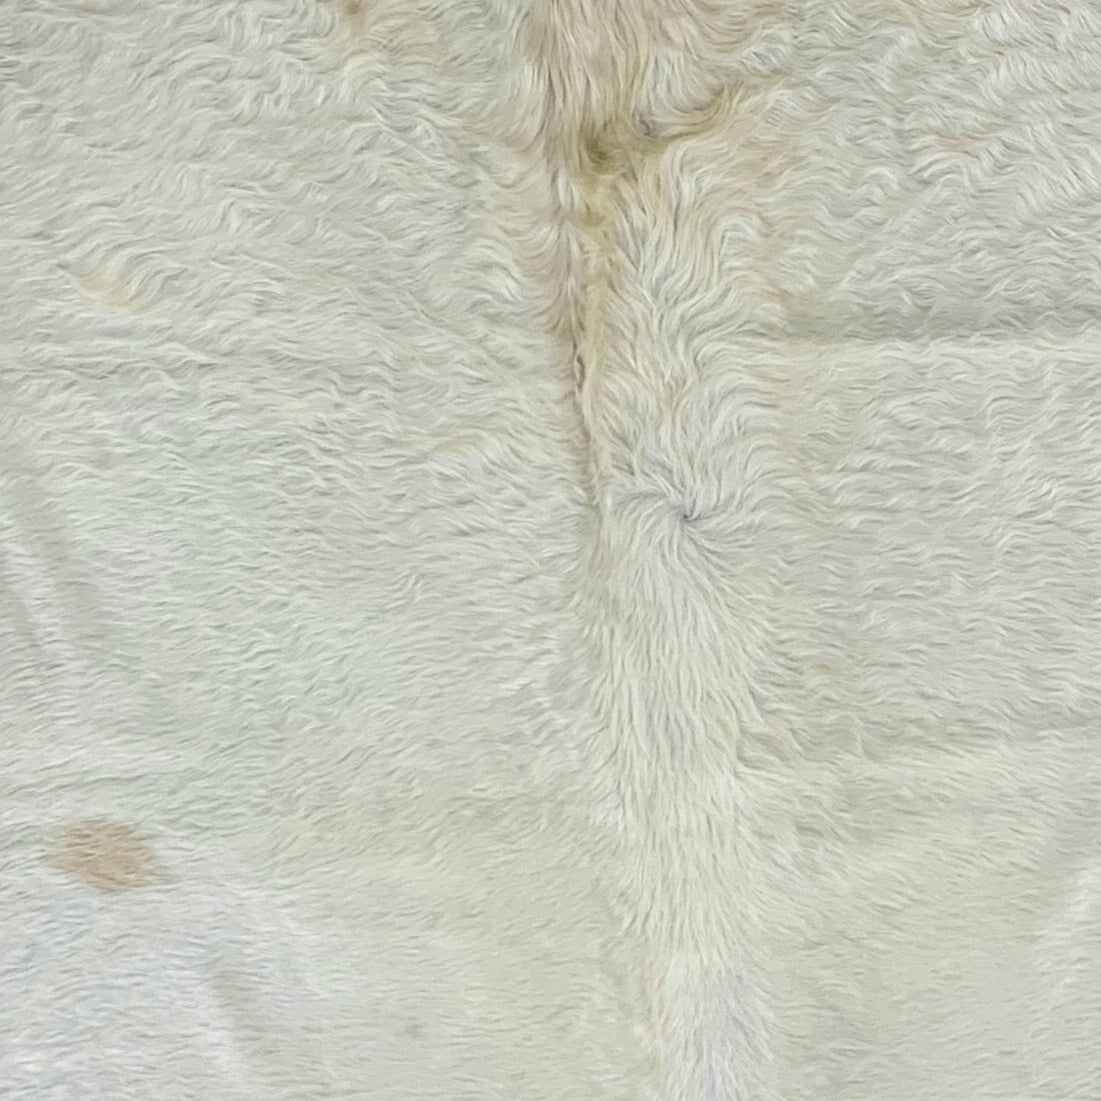 XL Brazilian Off-White Cowhide, long hair (BRWT021)